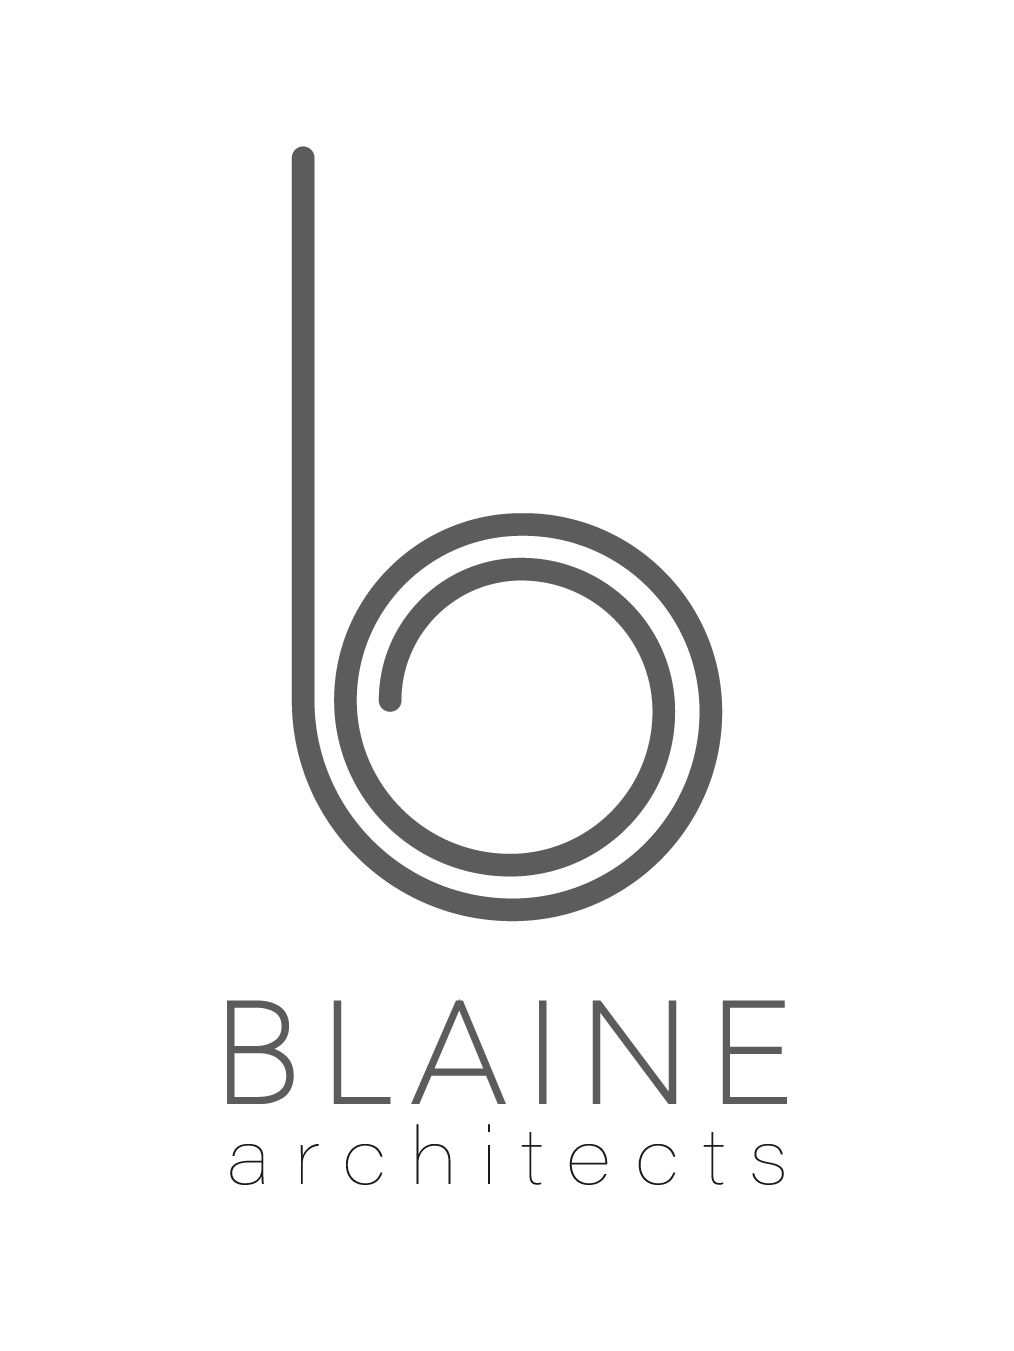 BLAINE Architects is a Top-Rated Architecture Firm in San Jose, CA